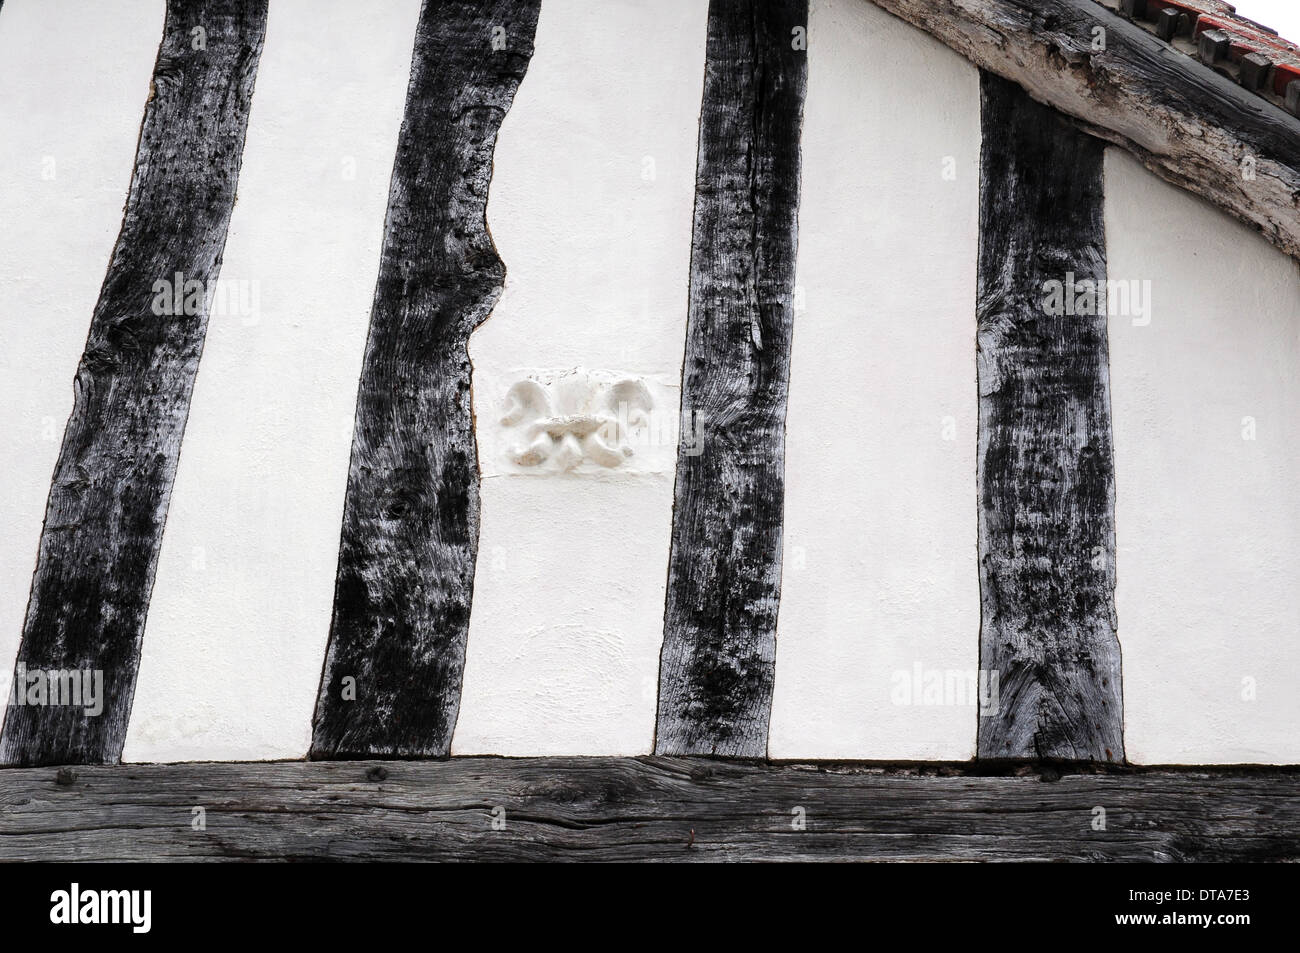 Fleur de lis, Wool merchant's mark, on the wall of a timber framed building in Lavenham, Suffolk. - Stock Image